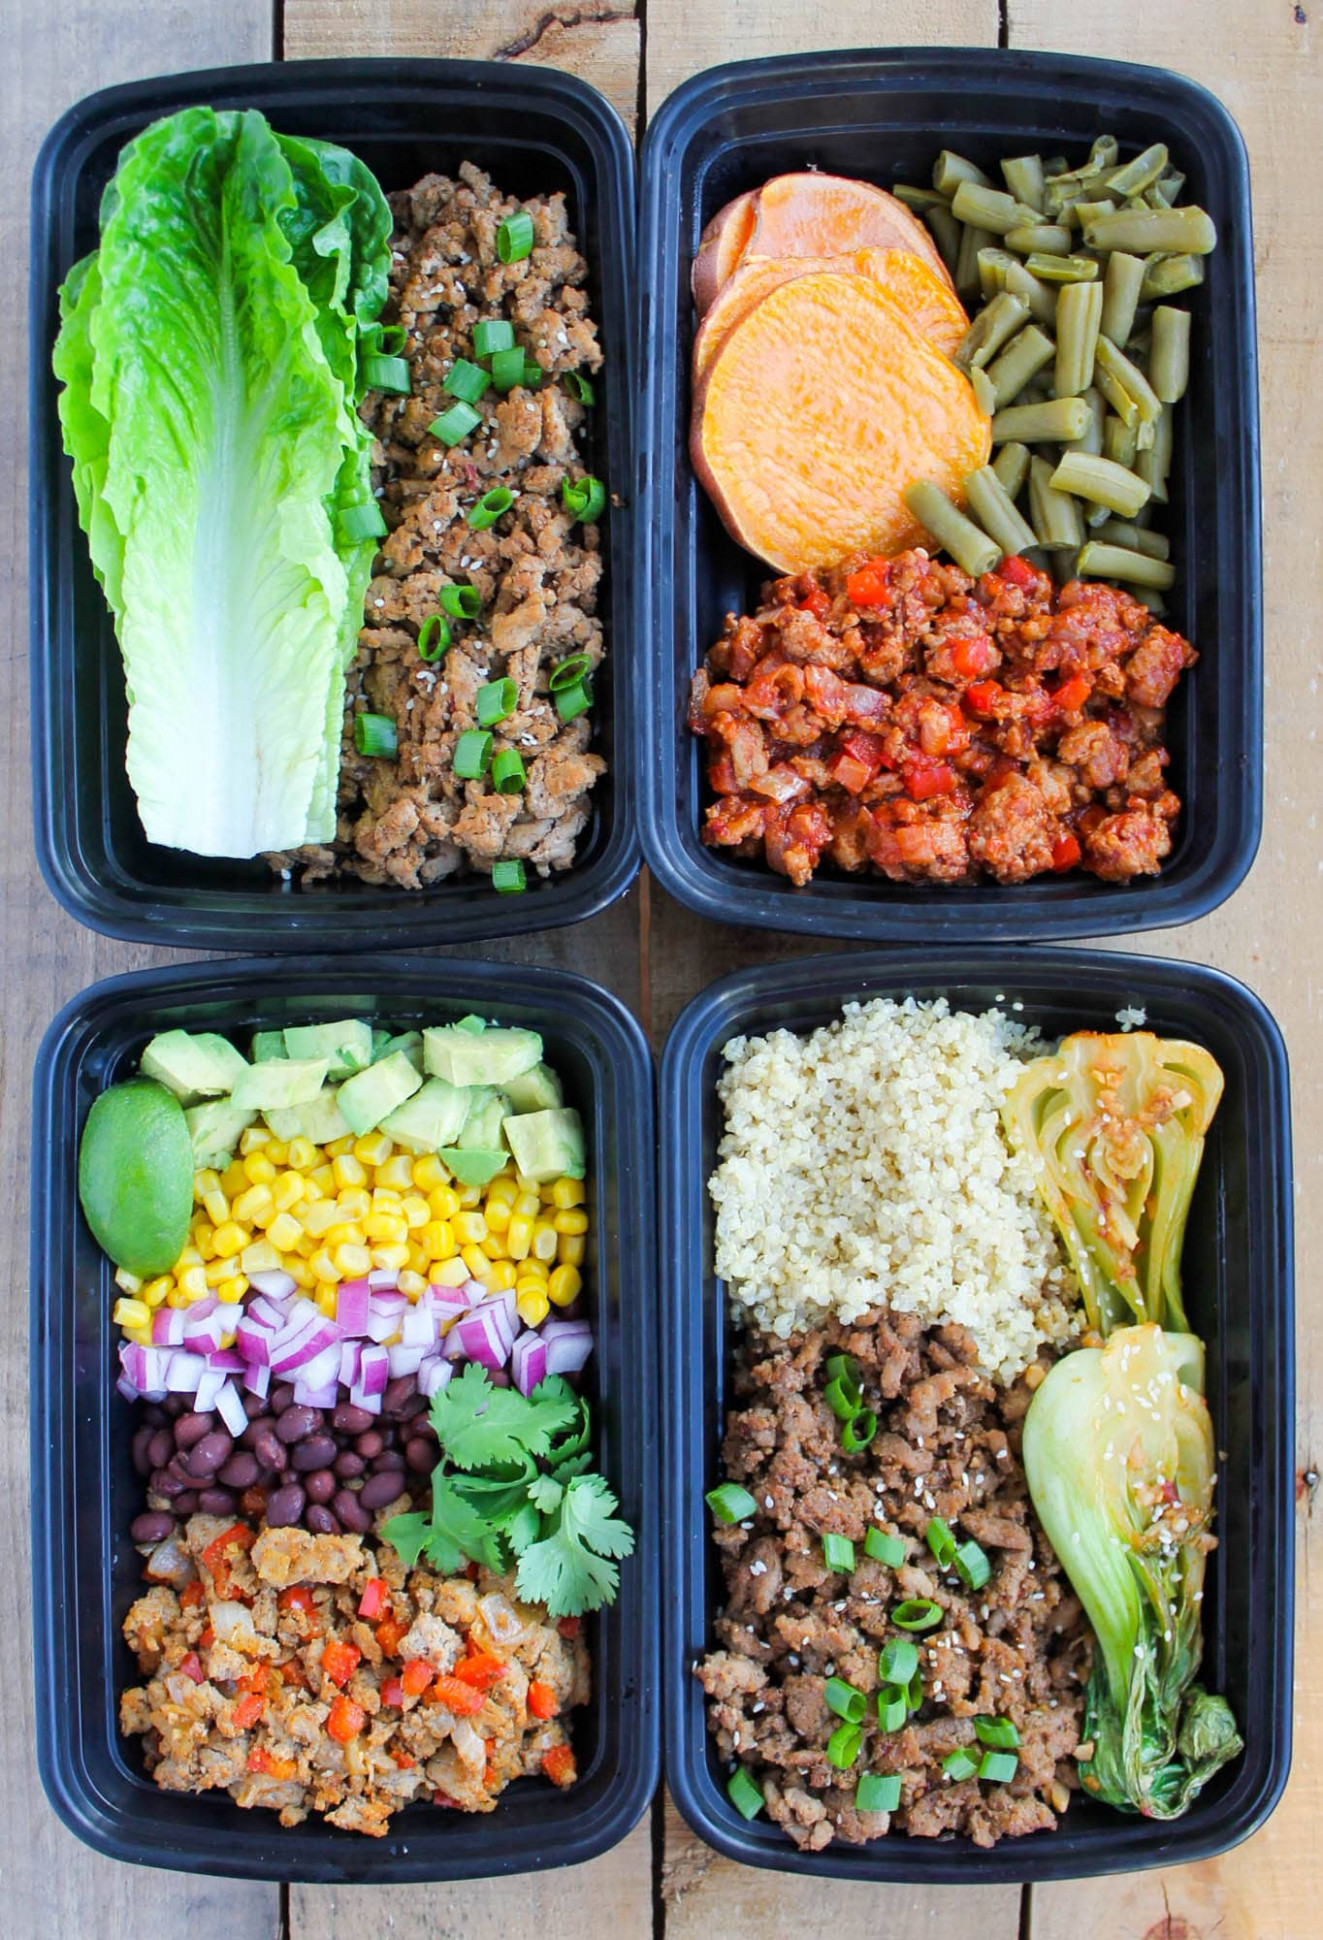 Easy Ground Turkey Meal Prep Bowls: 4 Ways - Smile Sandwich - Healthy Recipes To Meal Prep